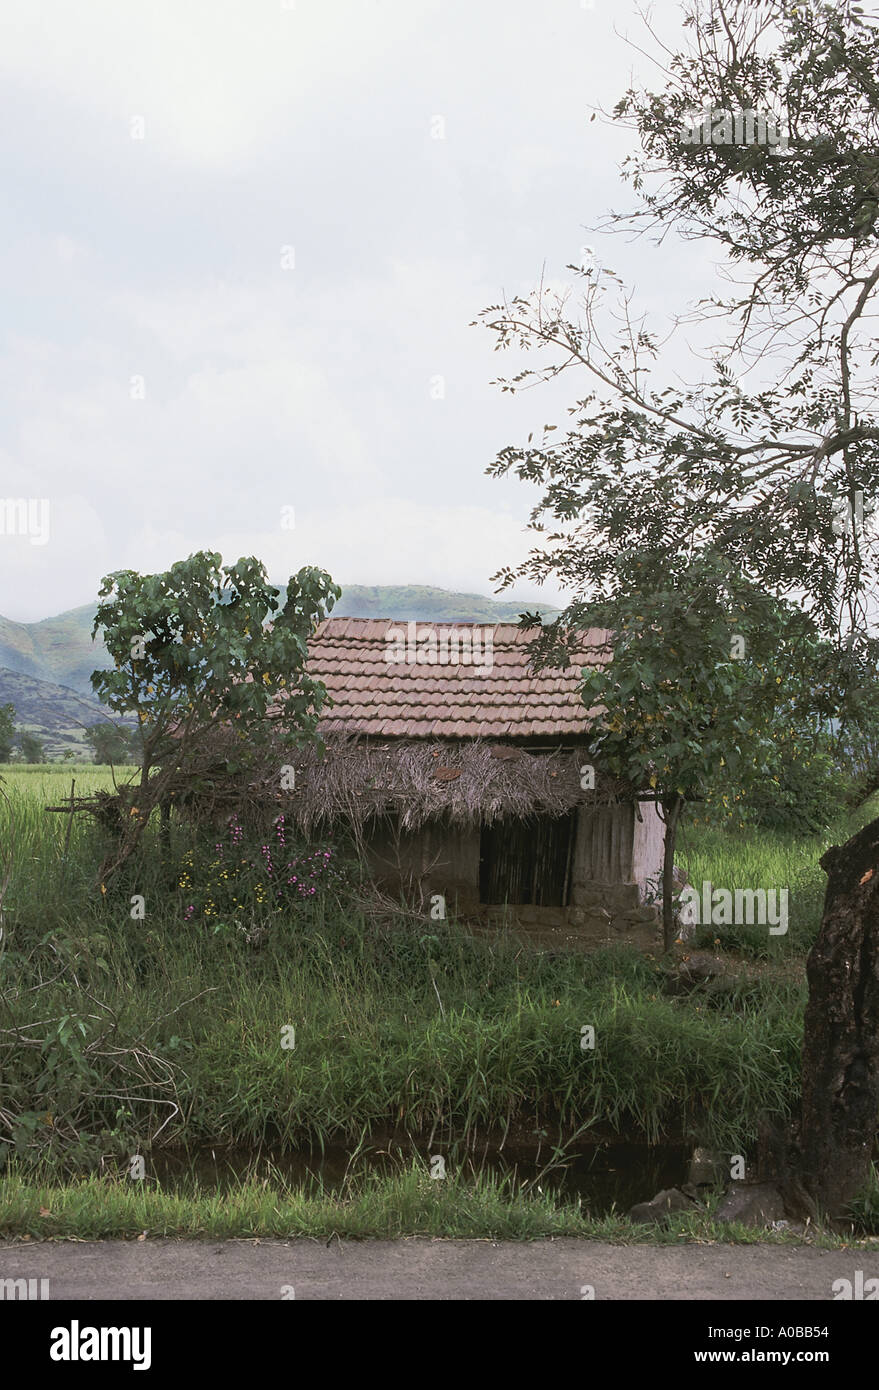 A farmer's hut in a rural agricultural area. Pune Maharasthra, India. Stock Photo